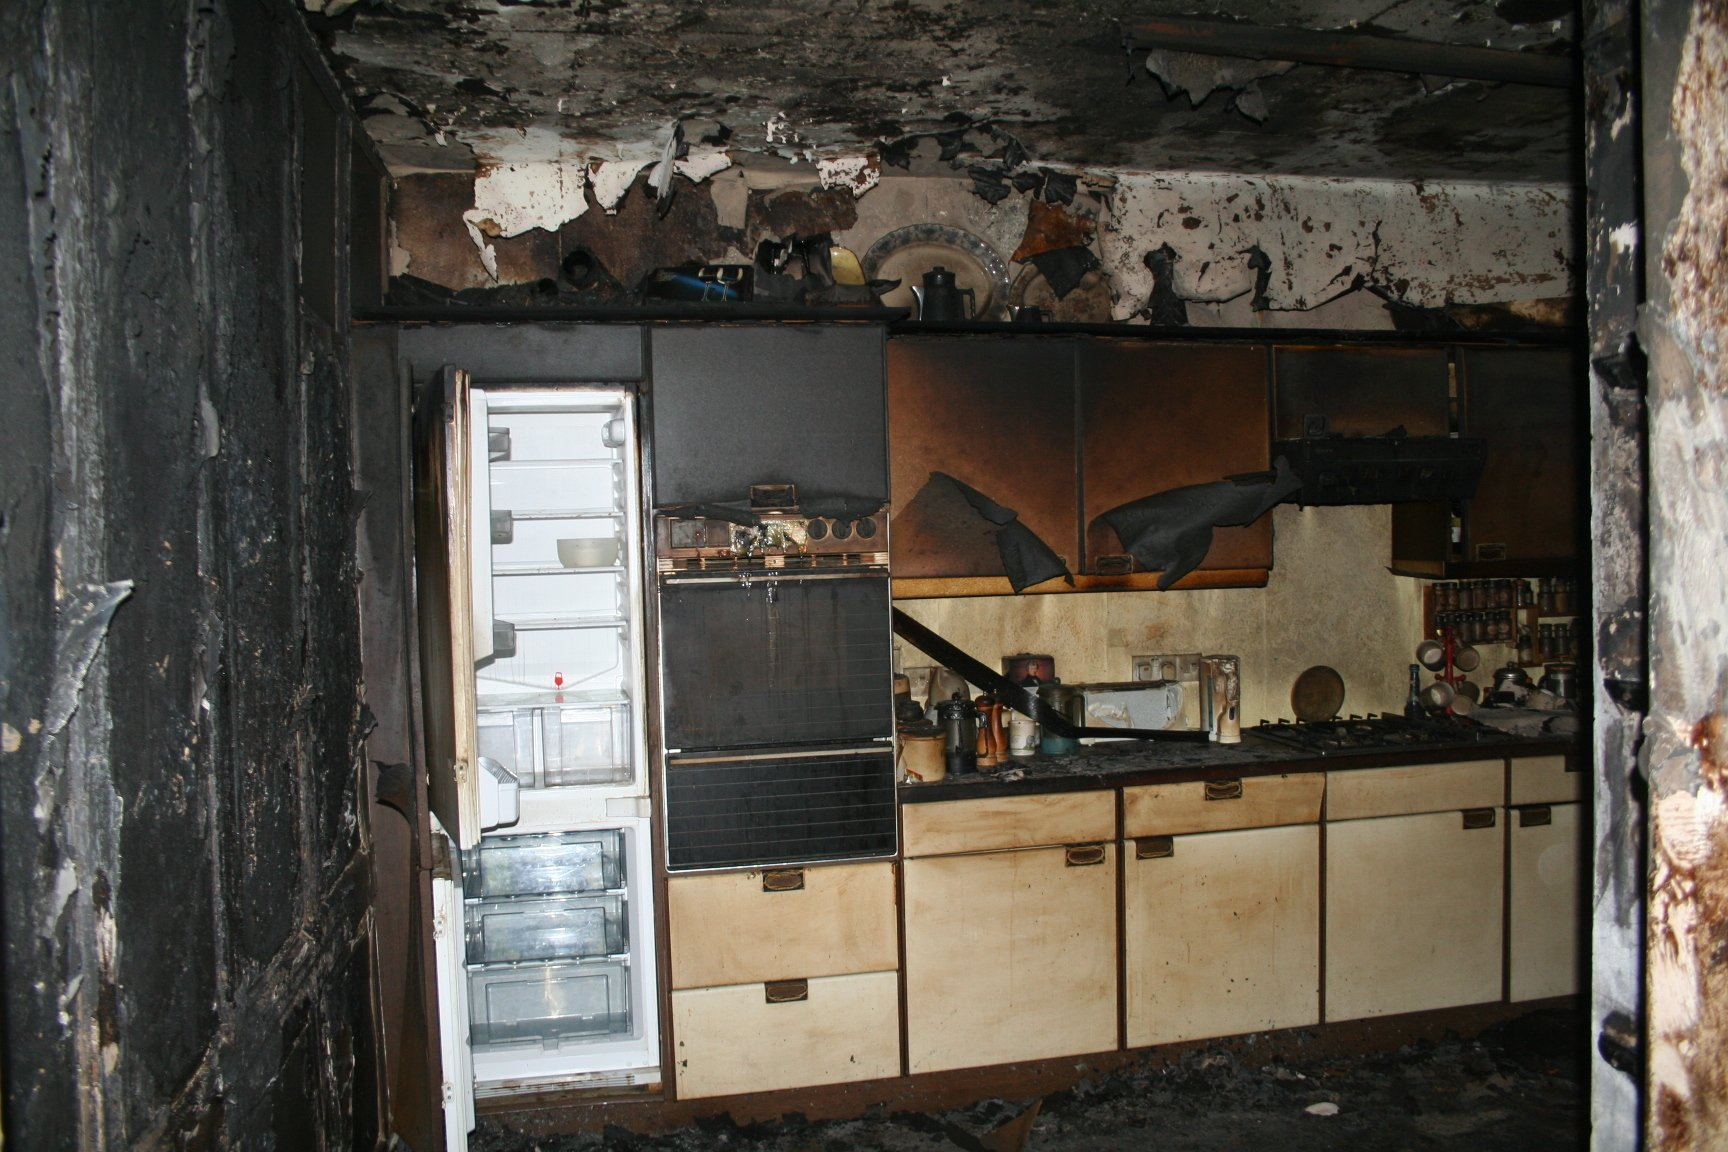 Fire-Smoke-Soot Removal and Cleanup in Naples, FL